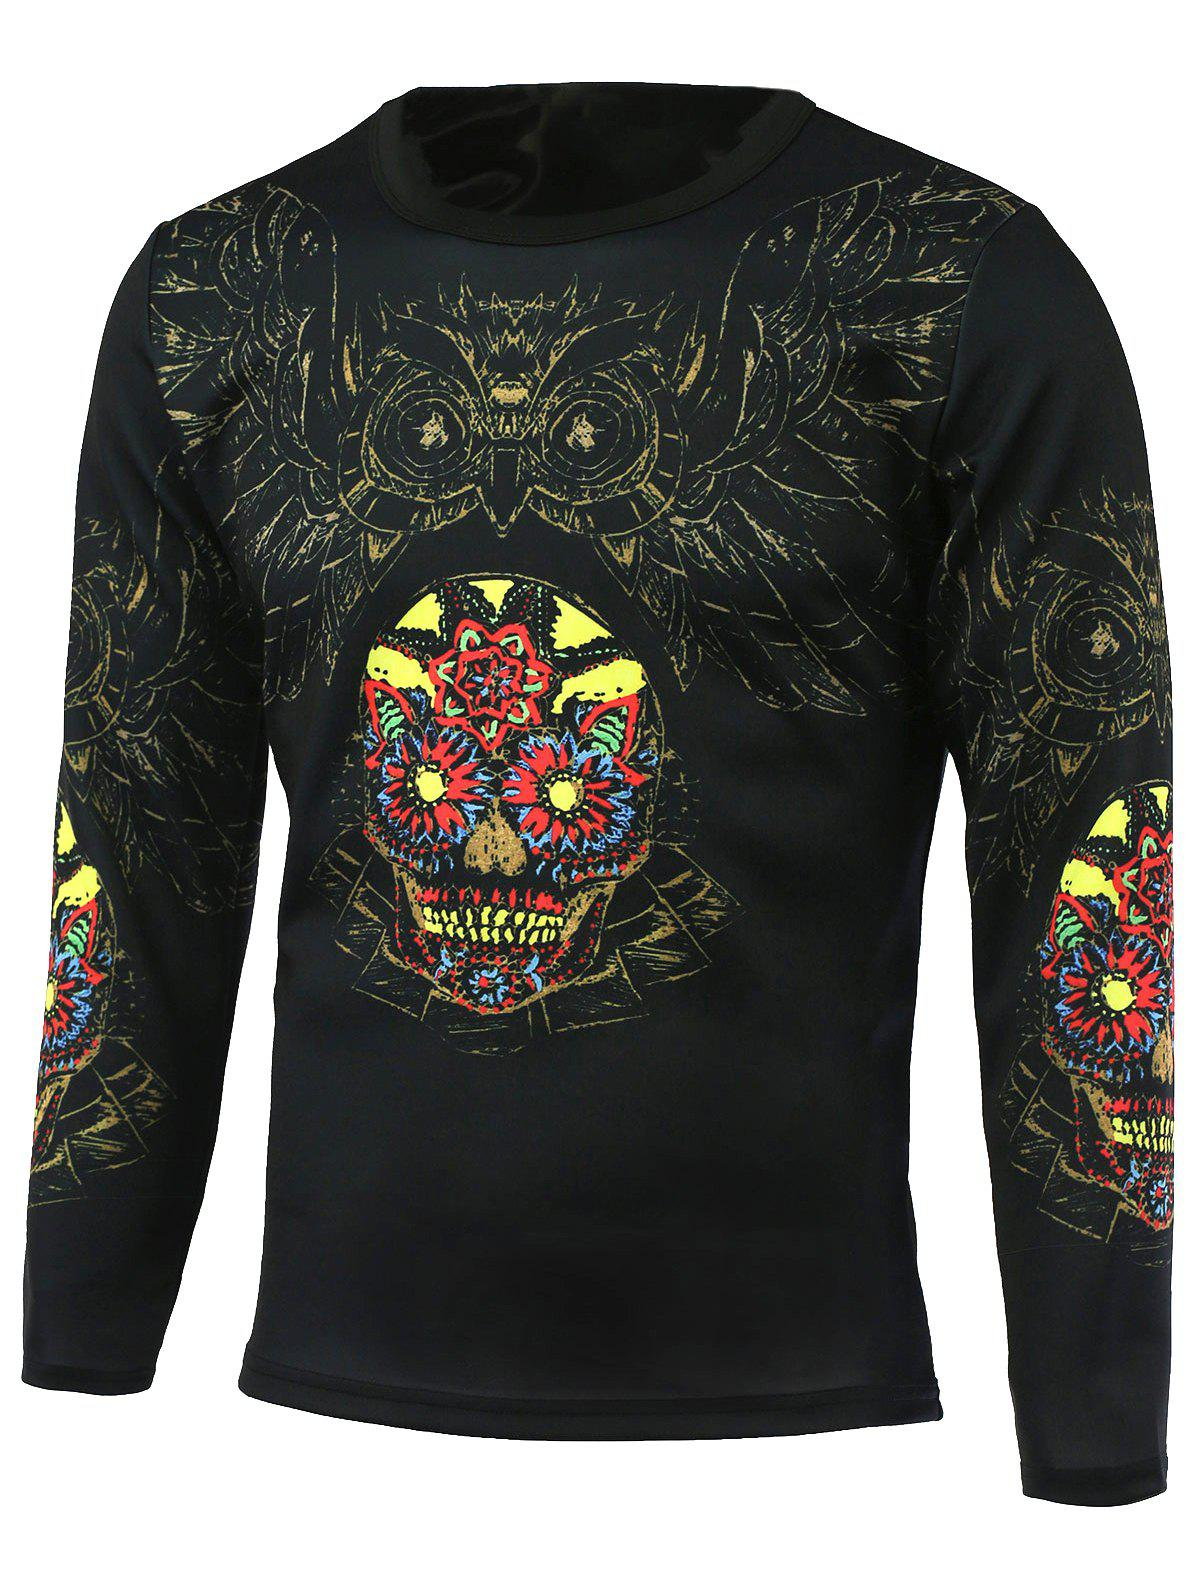 Flower and Owl Printed Round Neck T-Shirt - BLACK M